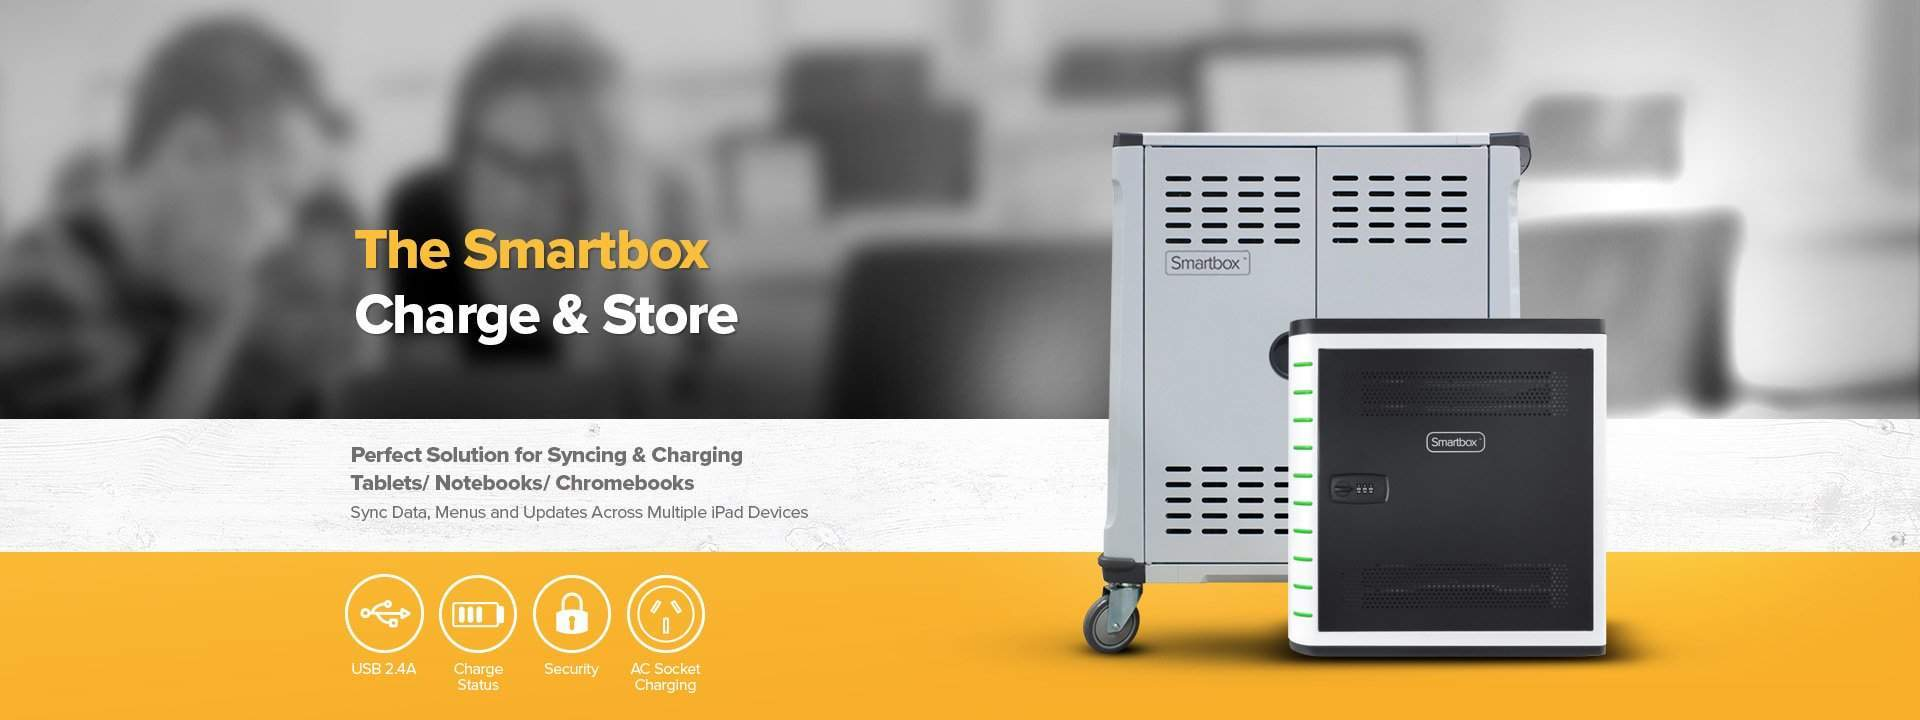 The smart box charge and storage